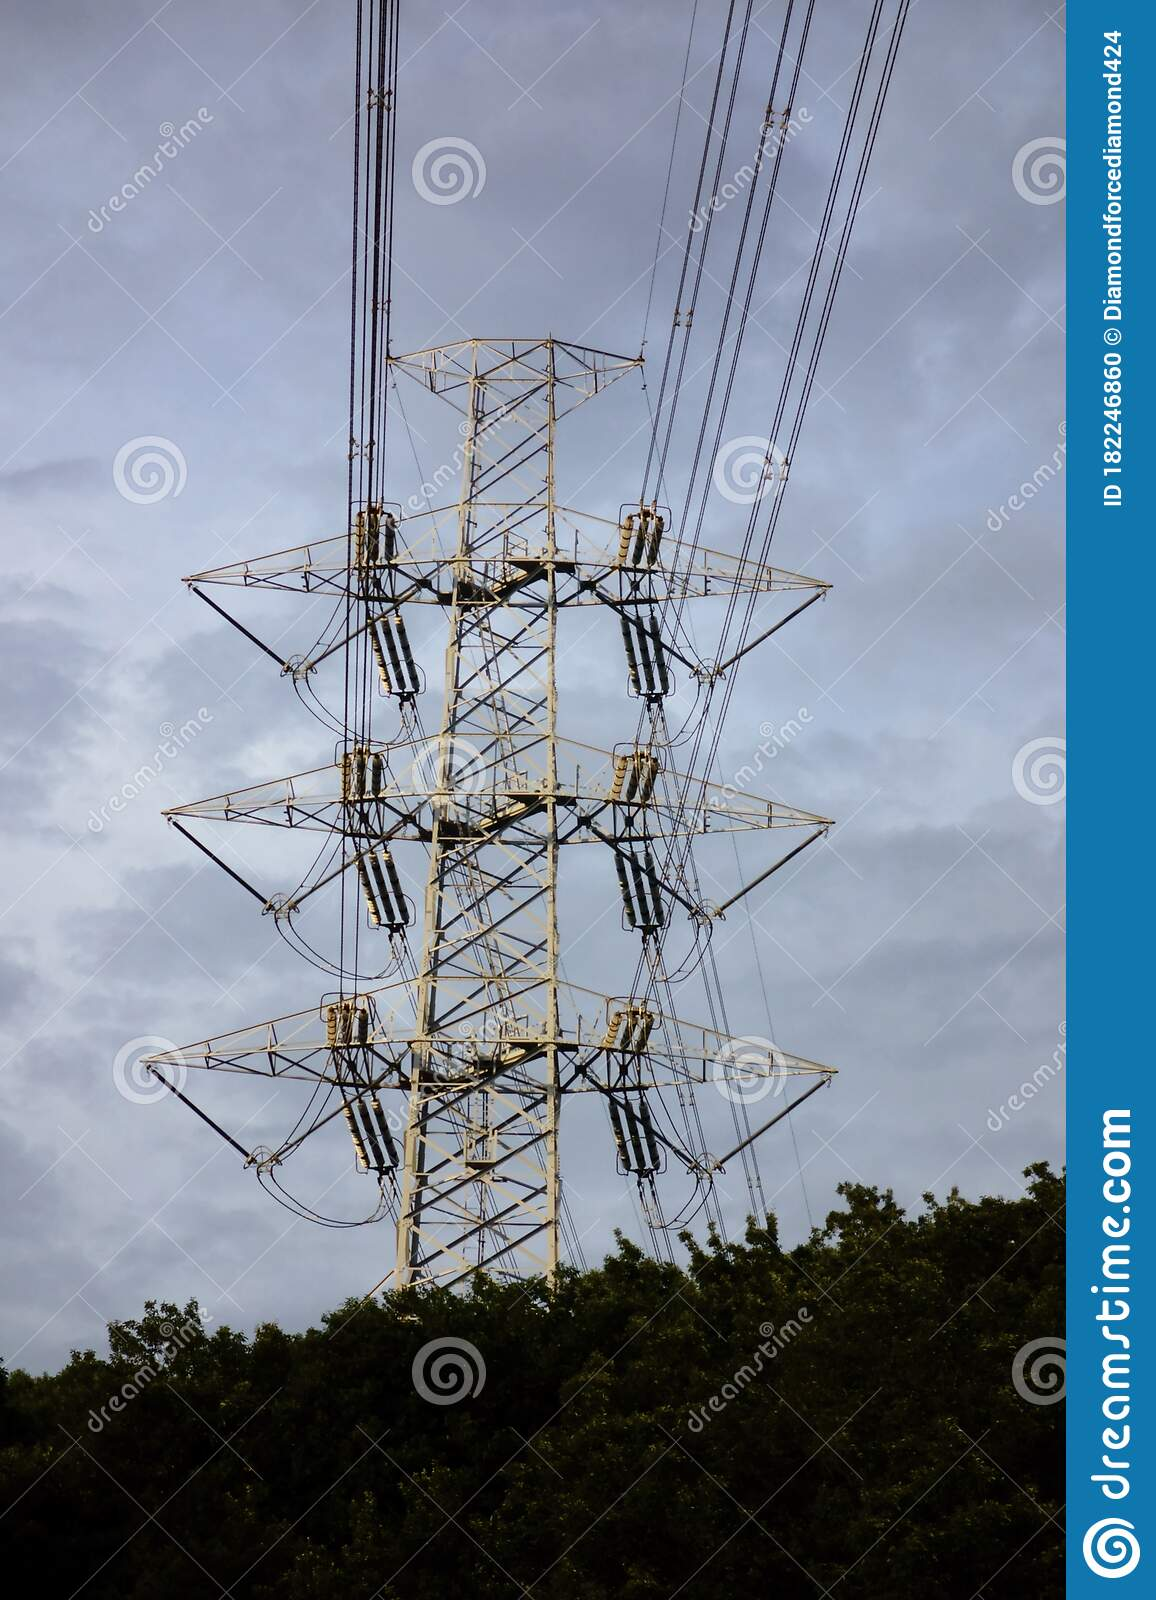 High Voltage Bolt Transmission Line Tower Stock Photo Image Of Business Transmission 182246860